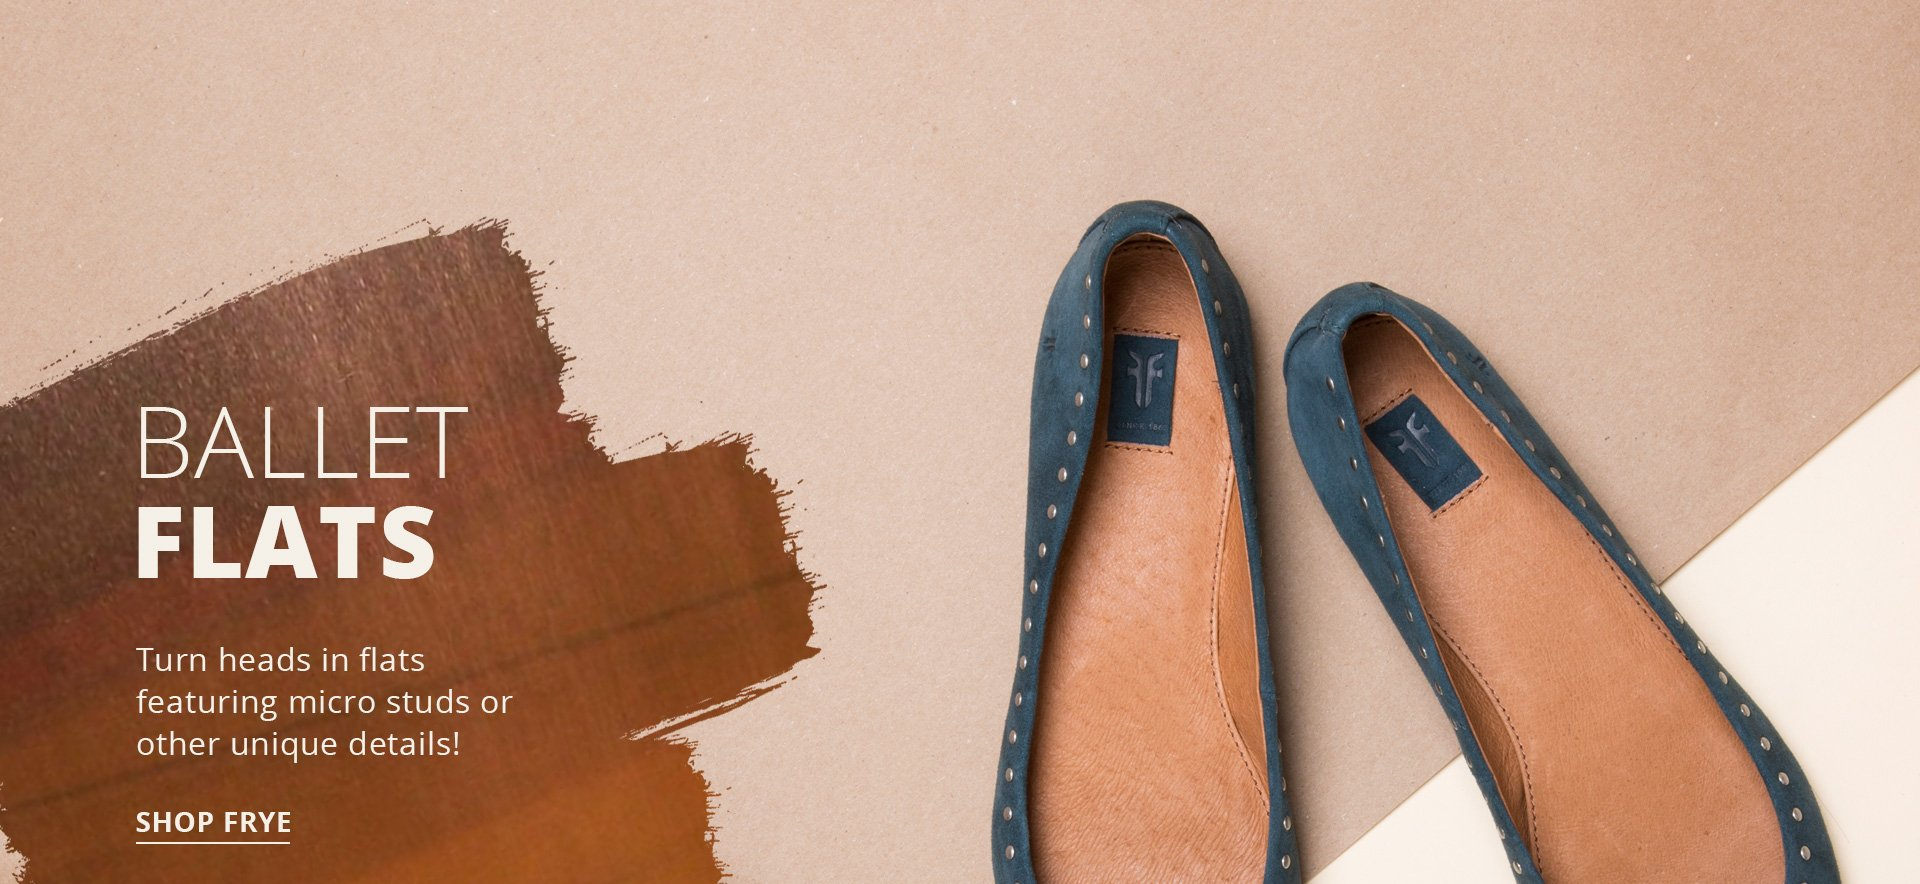 Ballet Flats. Turn heads in flats featuring micro studs or other unique details! Shop Frye.